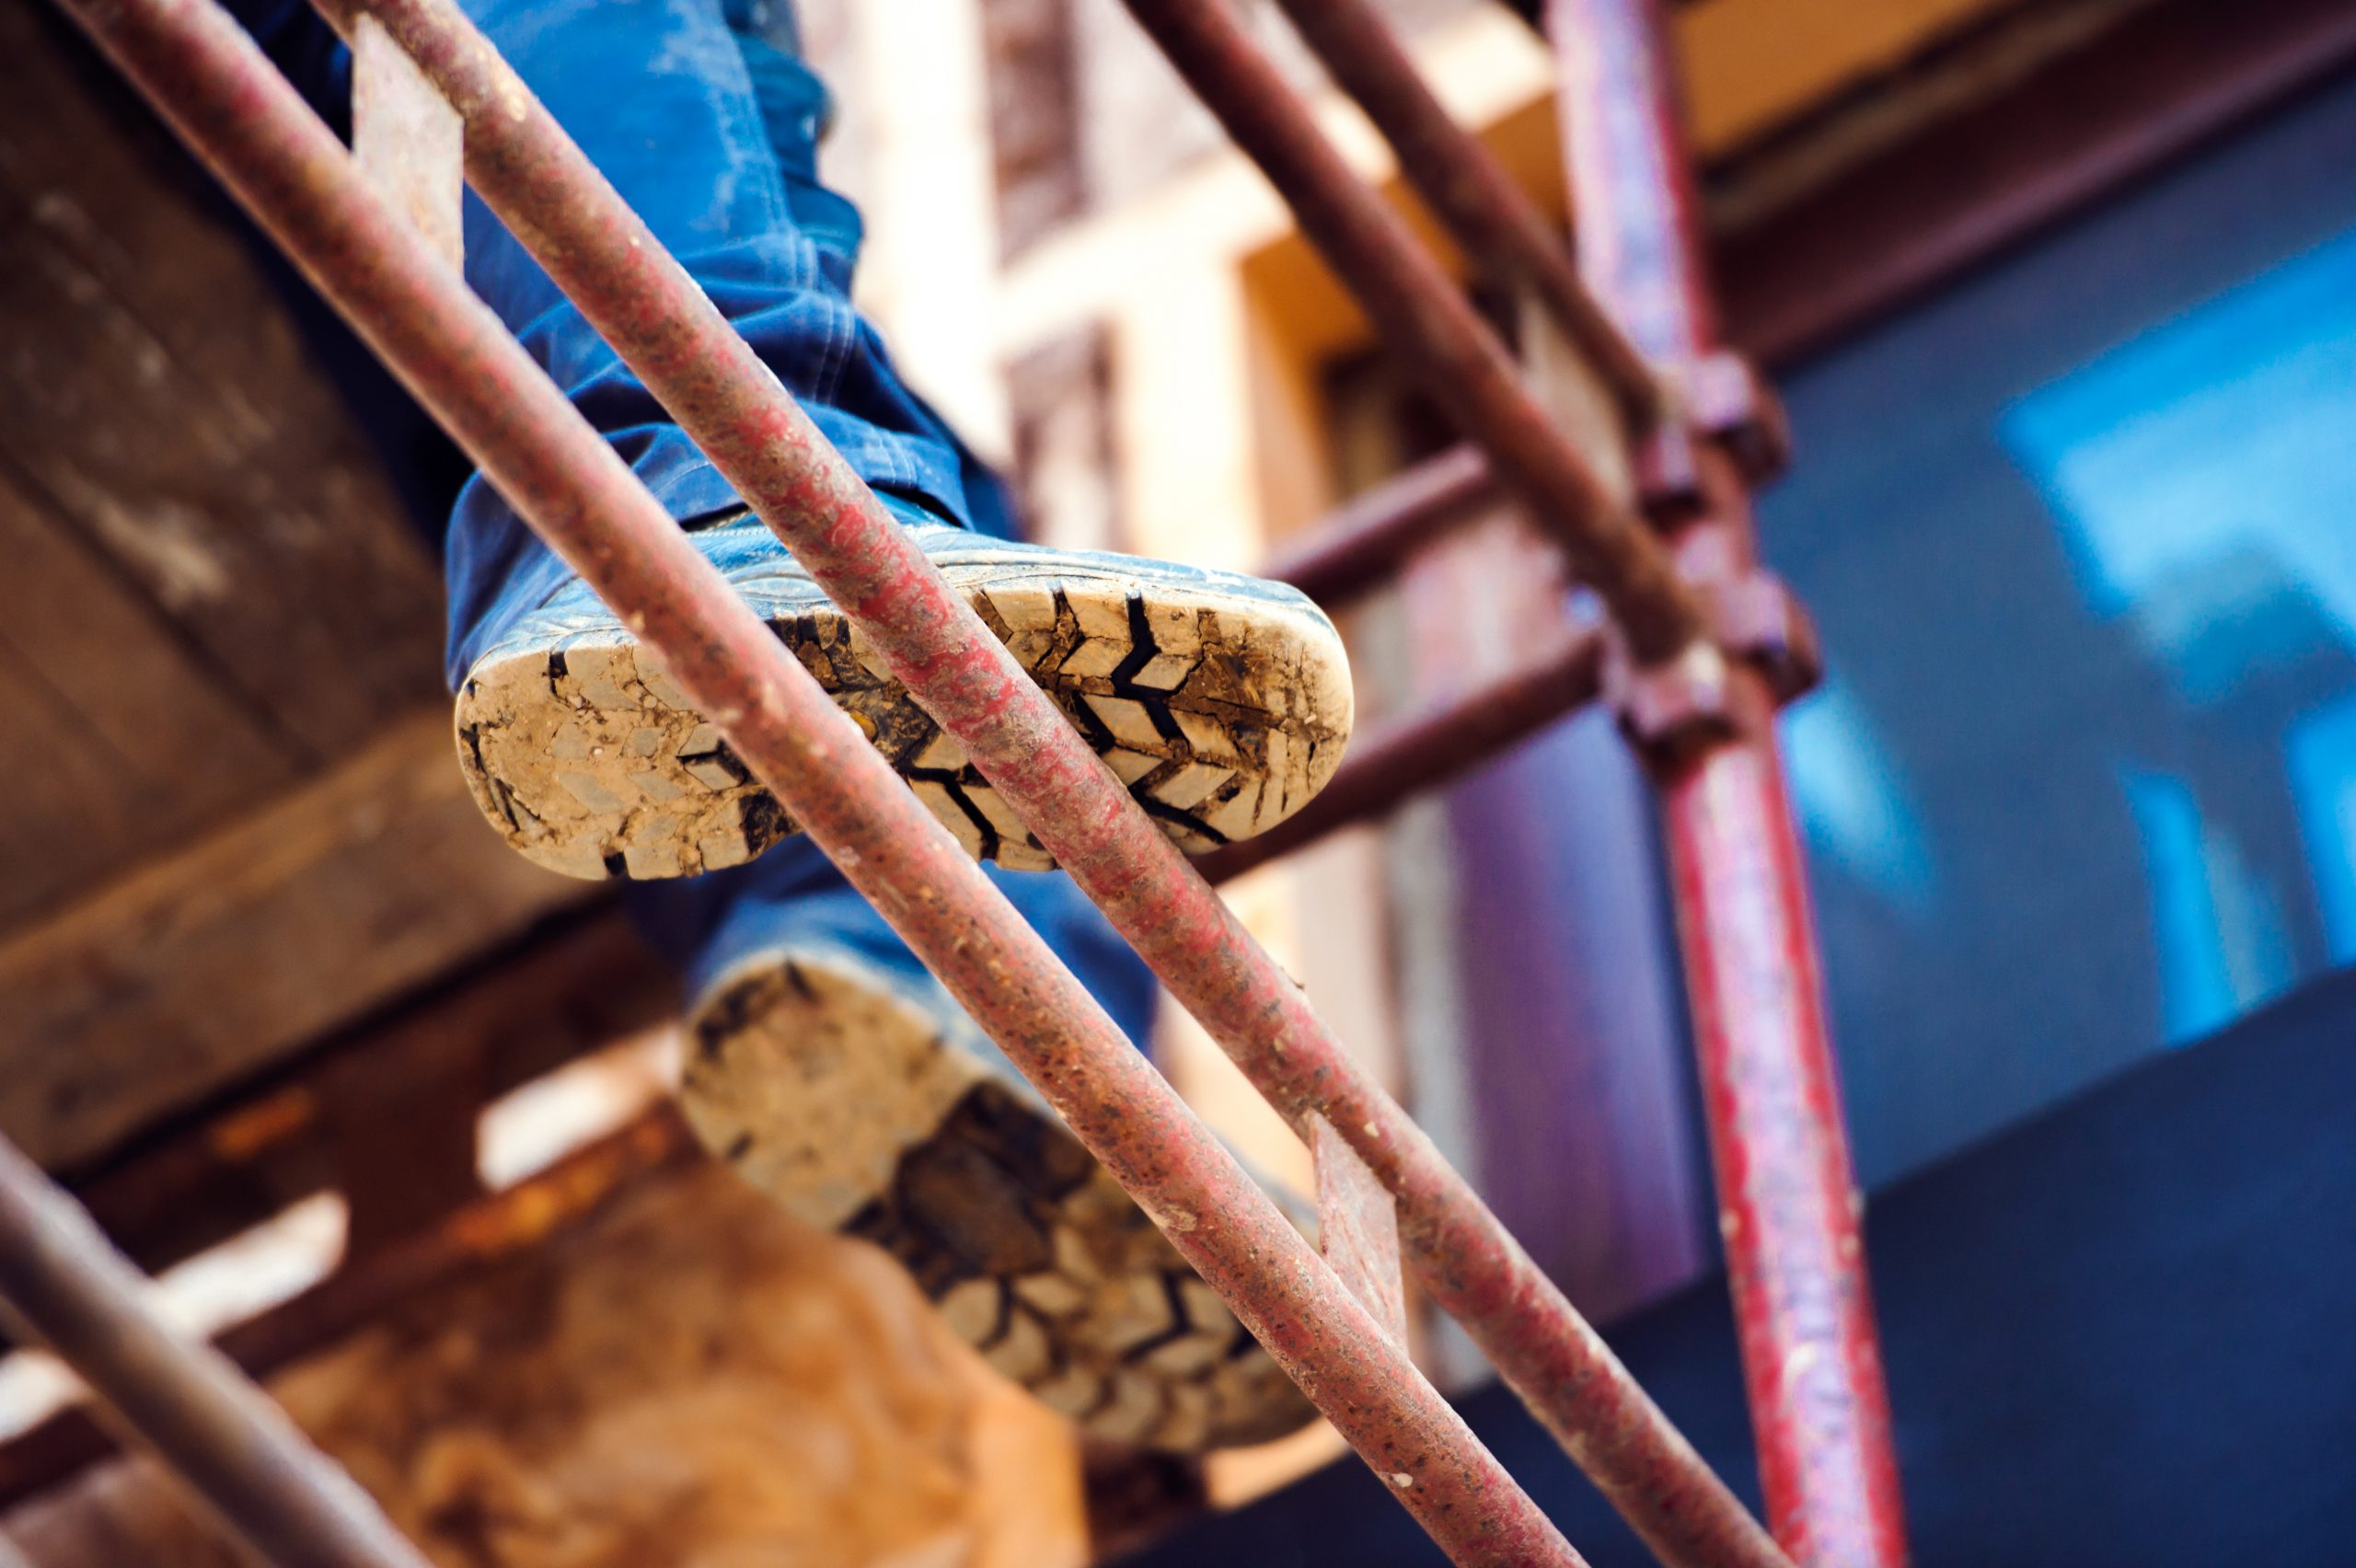 Detail of legs of construction worker standing on scaffolding